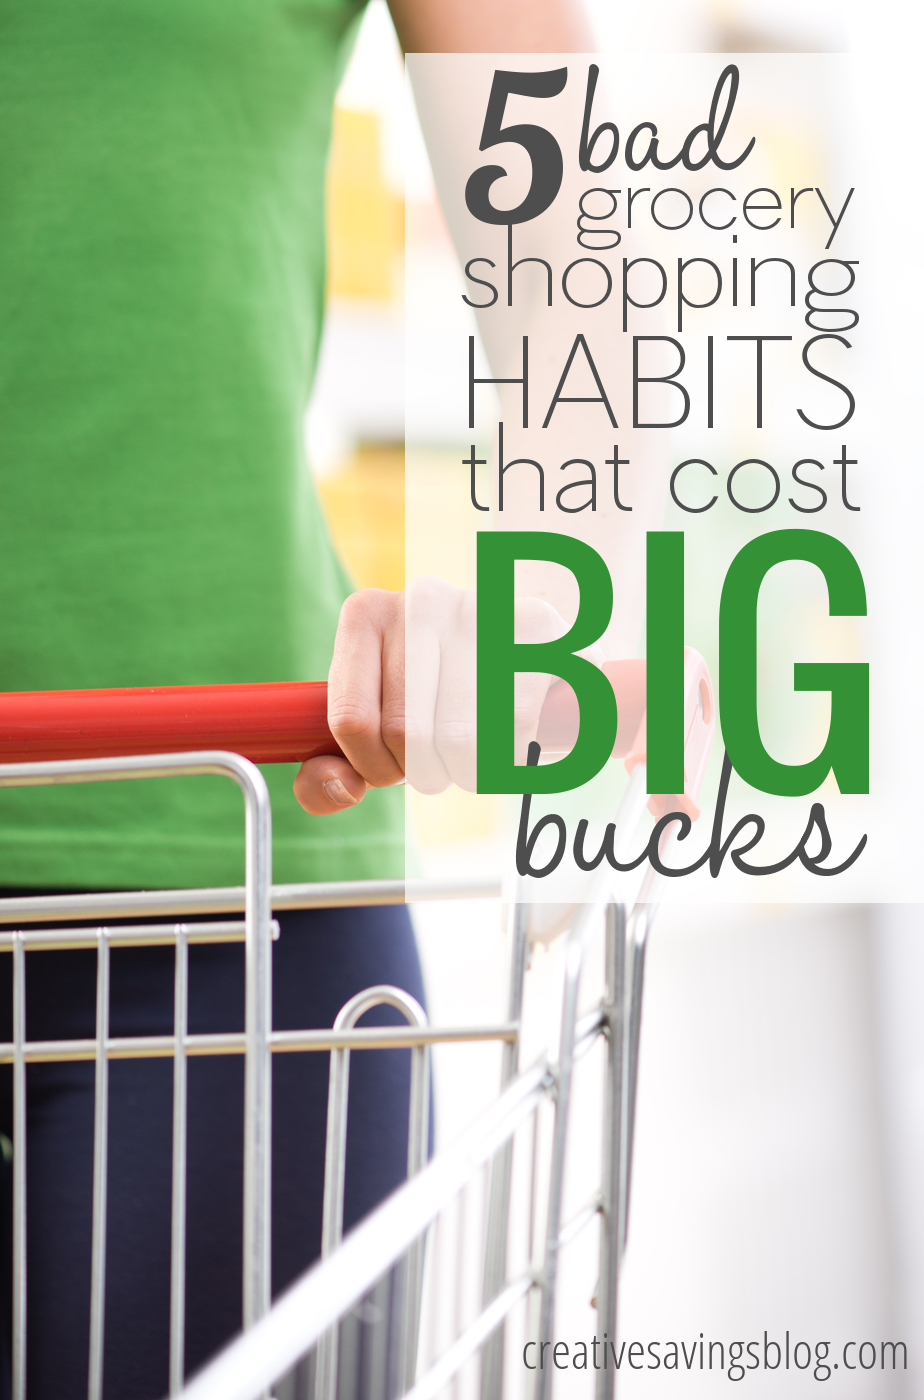 Stop wasting your hard-earned dollars with bad grocery shopping habits that literally take minutes to change. With consistent practice, you'll not only learn to shop smarter, you'll also shave hundreds off your bill!